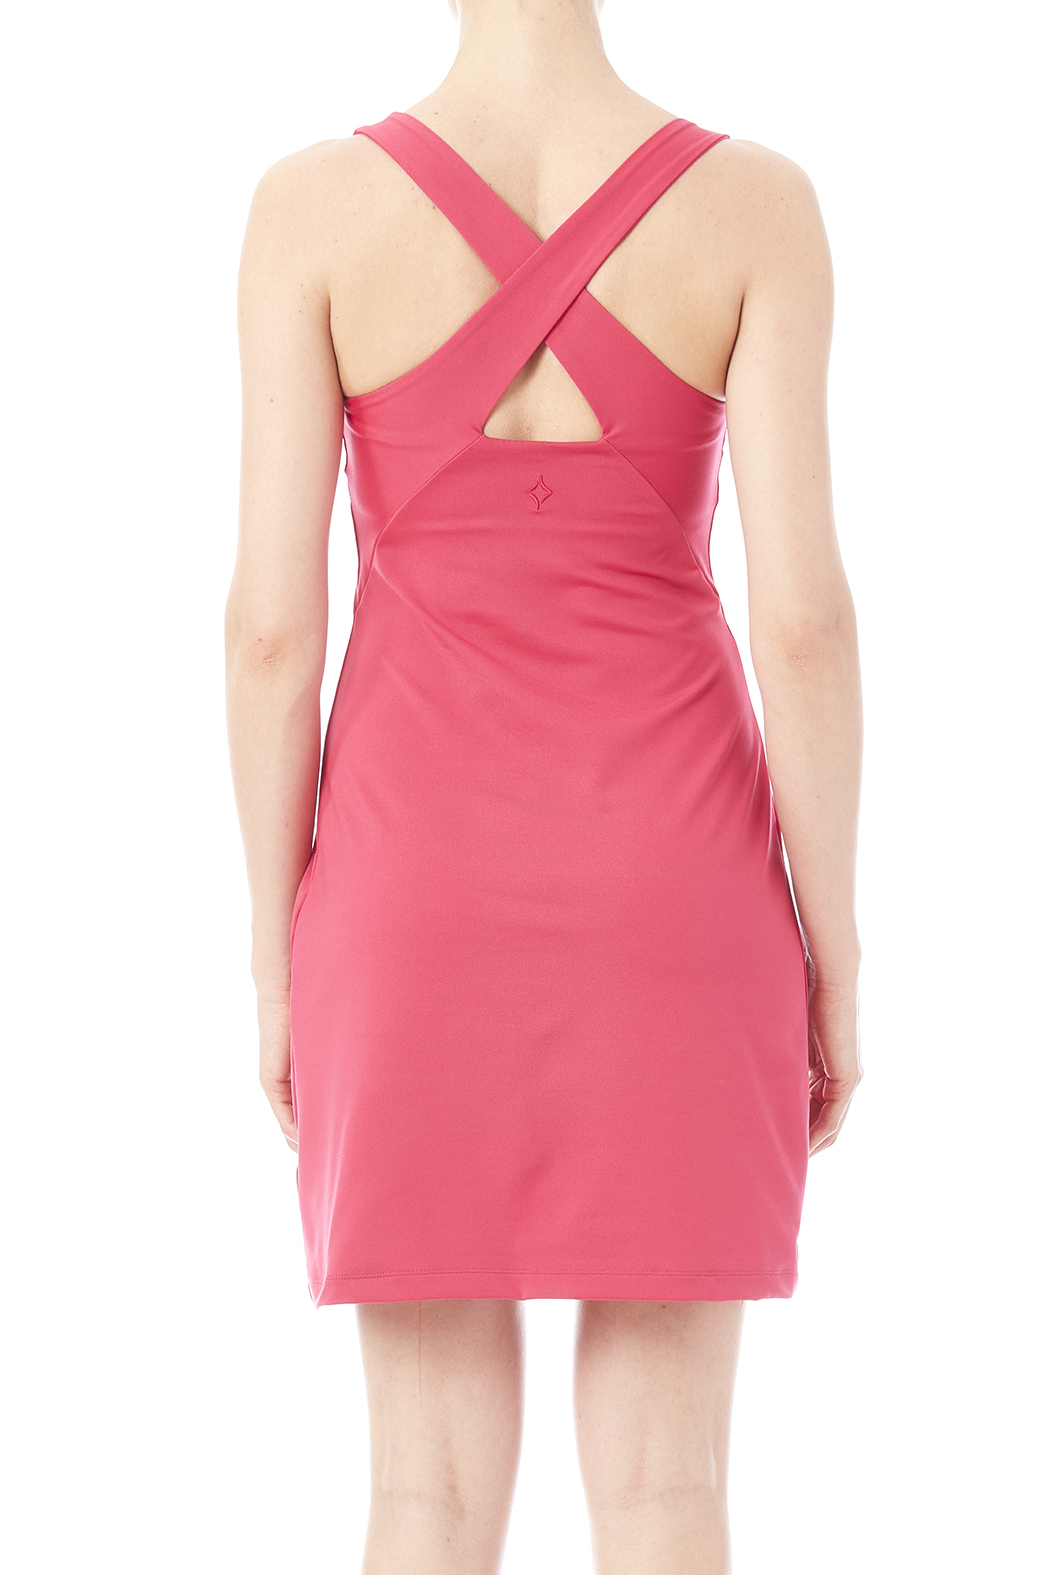 Stonewear Designs Crossback Dress - Back Cropped Image